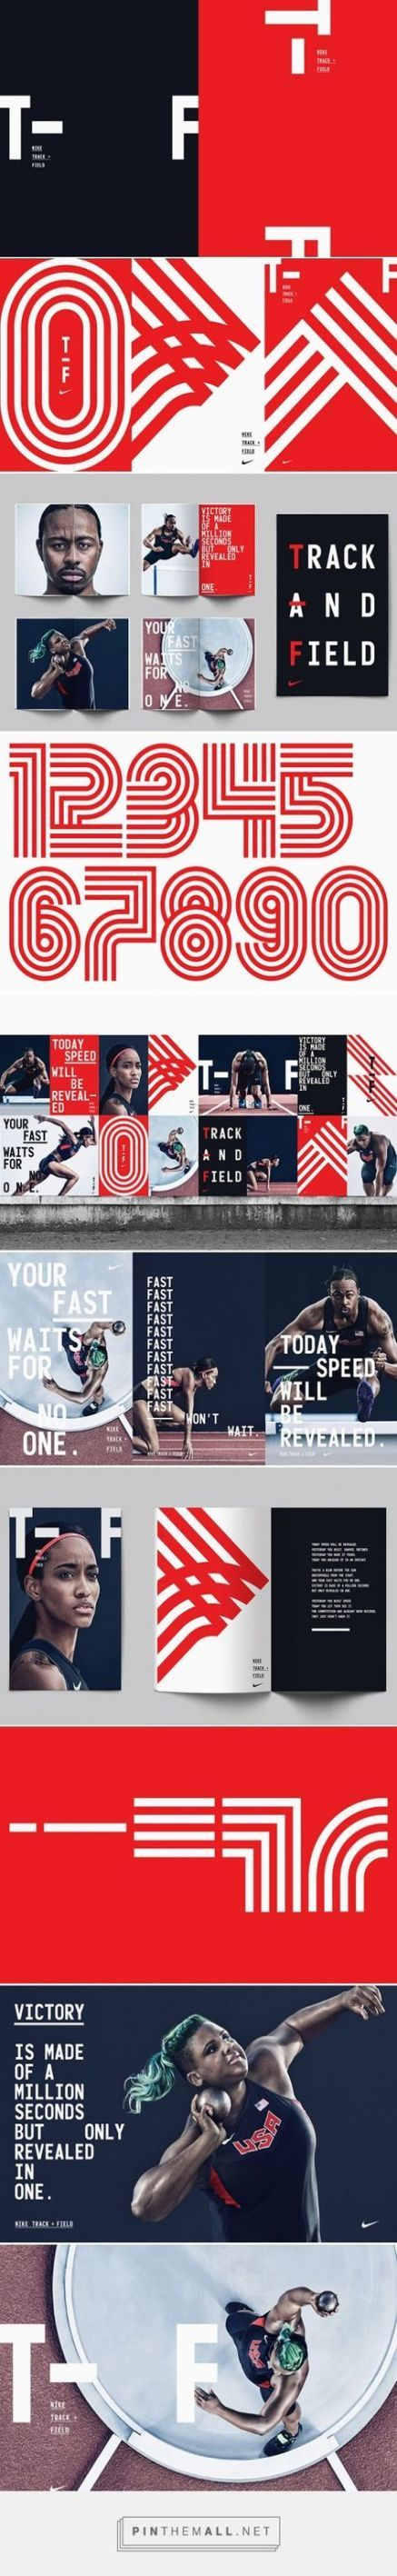 63+ ideas fitness logo branding fonts for 2019 #fitness